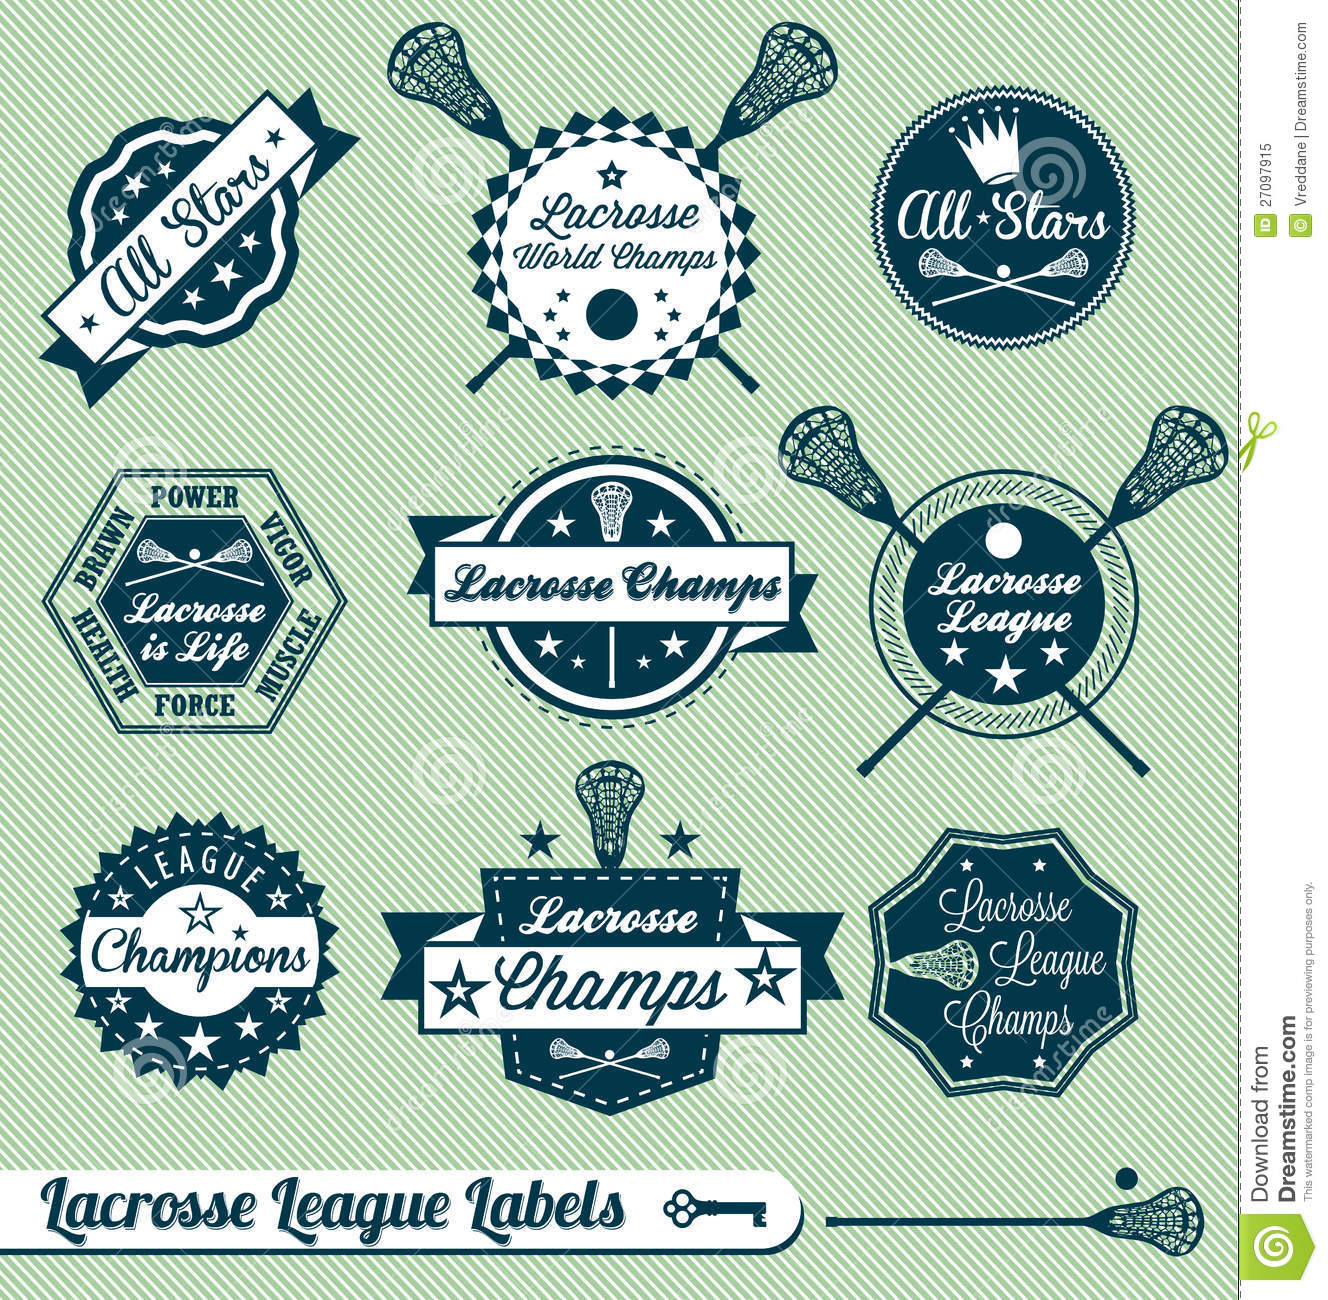 Retro Lacrosse League Labels And Stickers Royalty Free ...